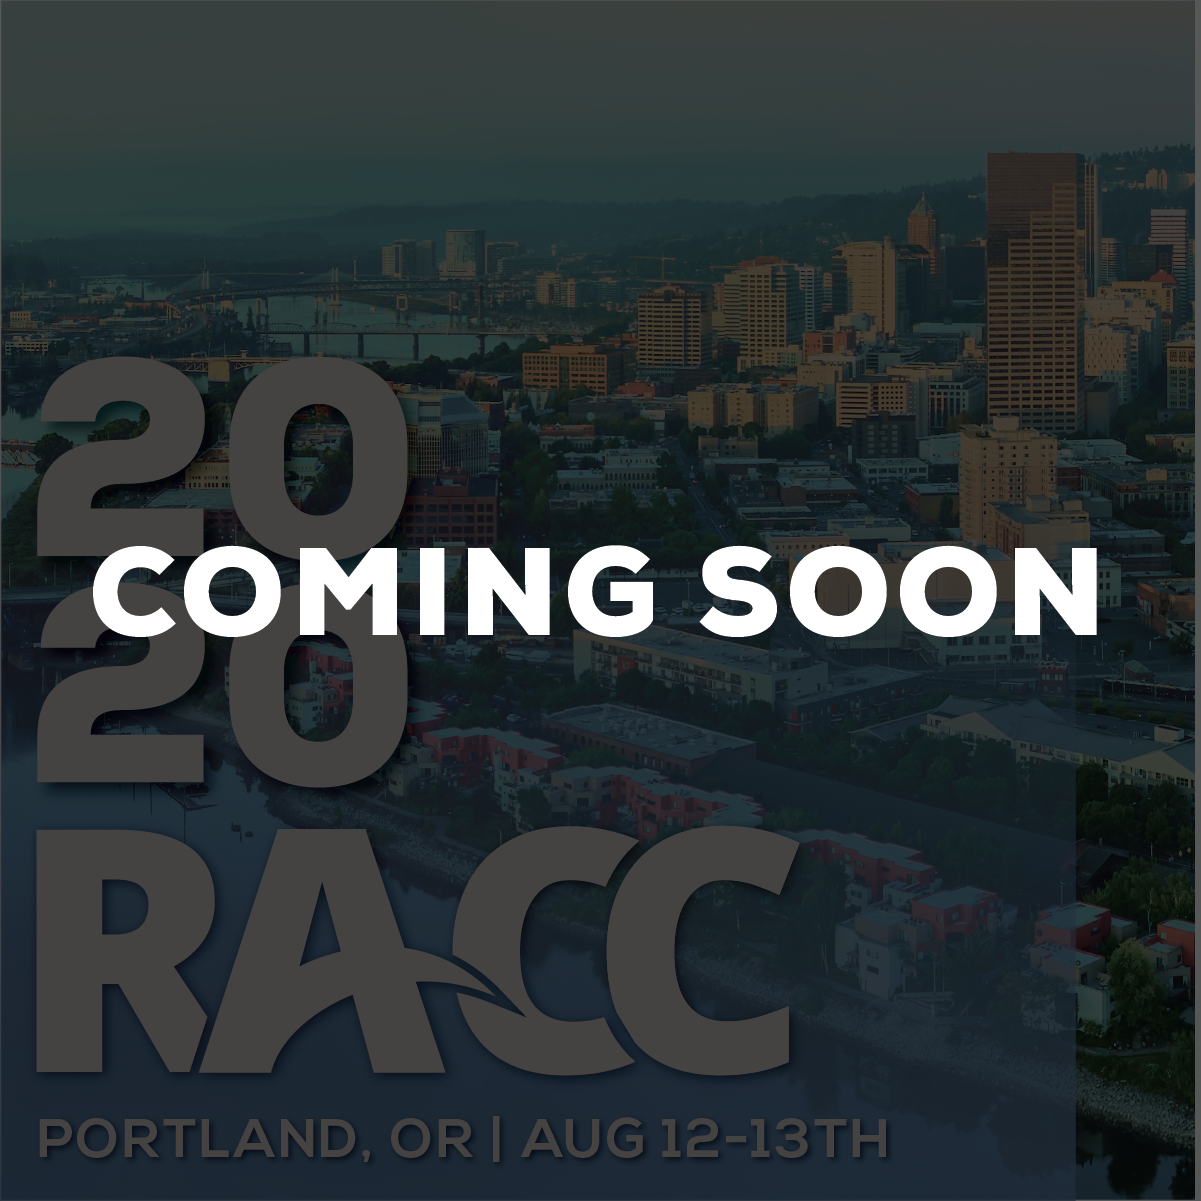 RACC 2website coming soon-02